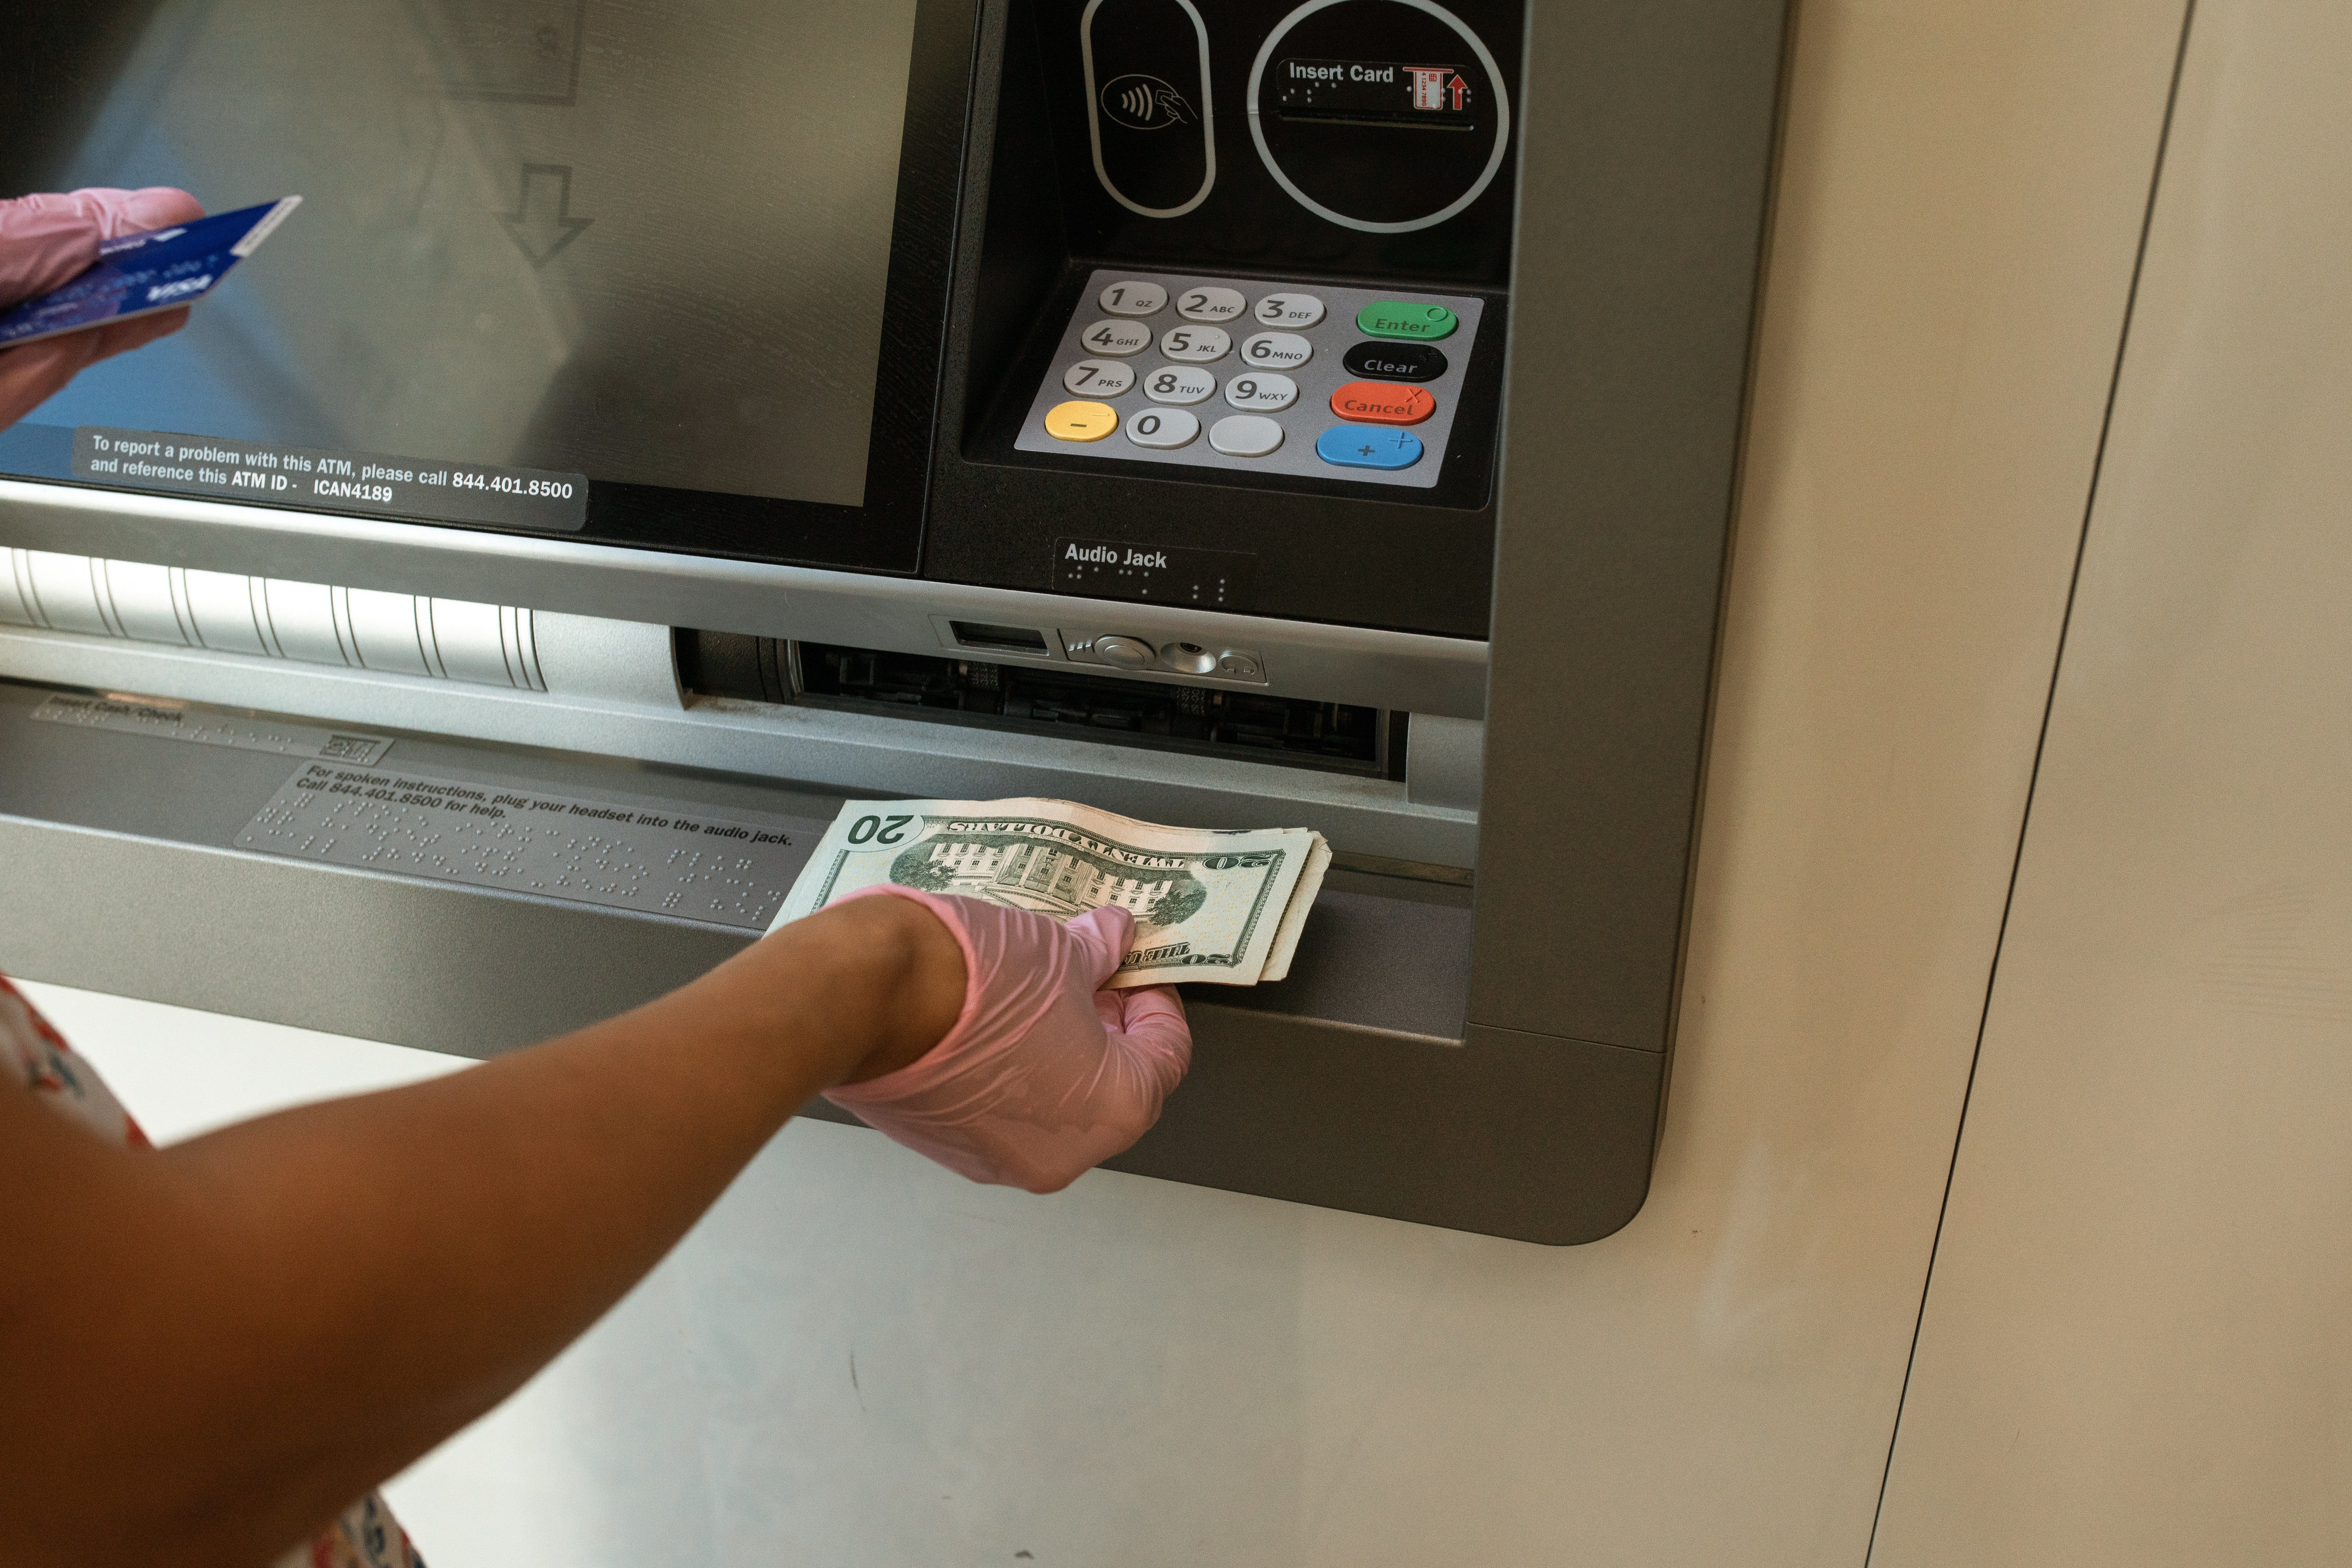 A customer withdrawing monet from an ATM   Source: Pexels